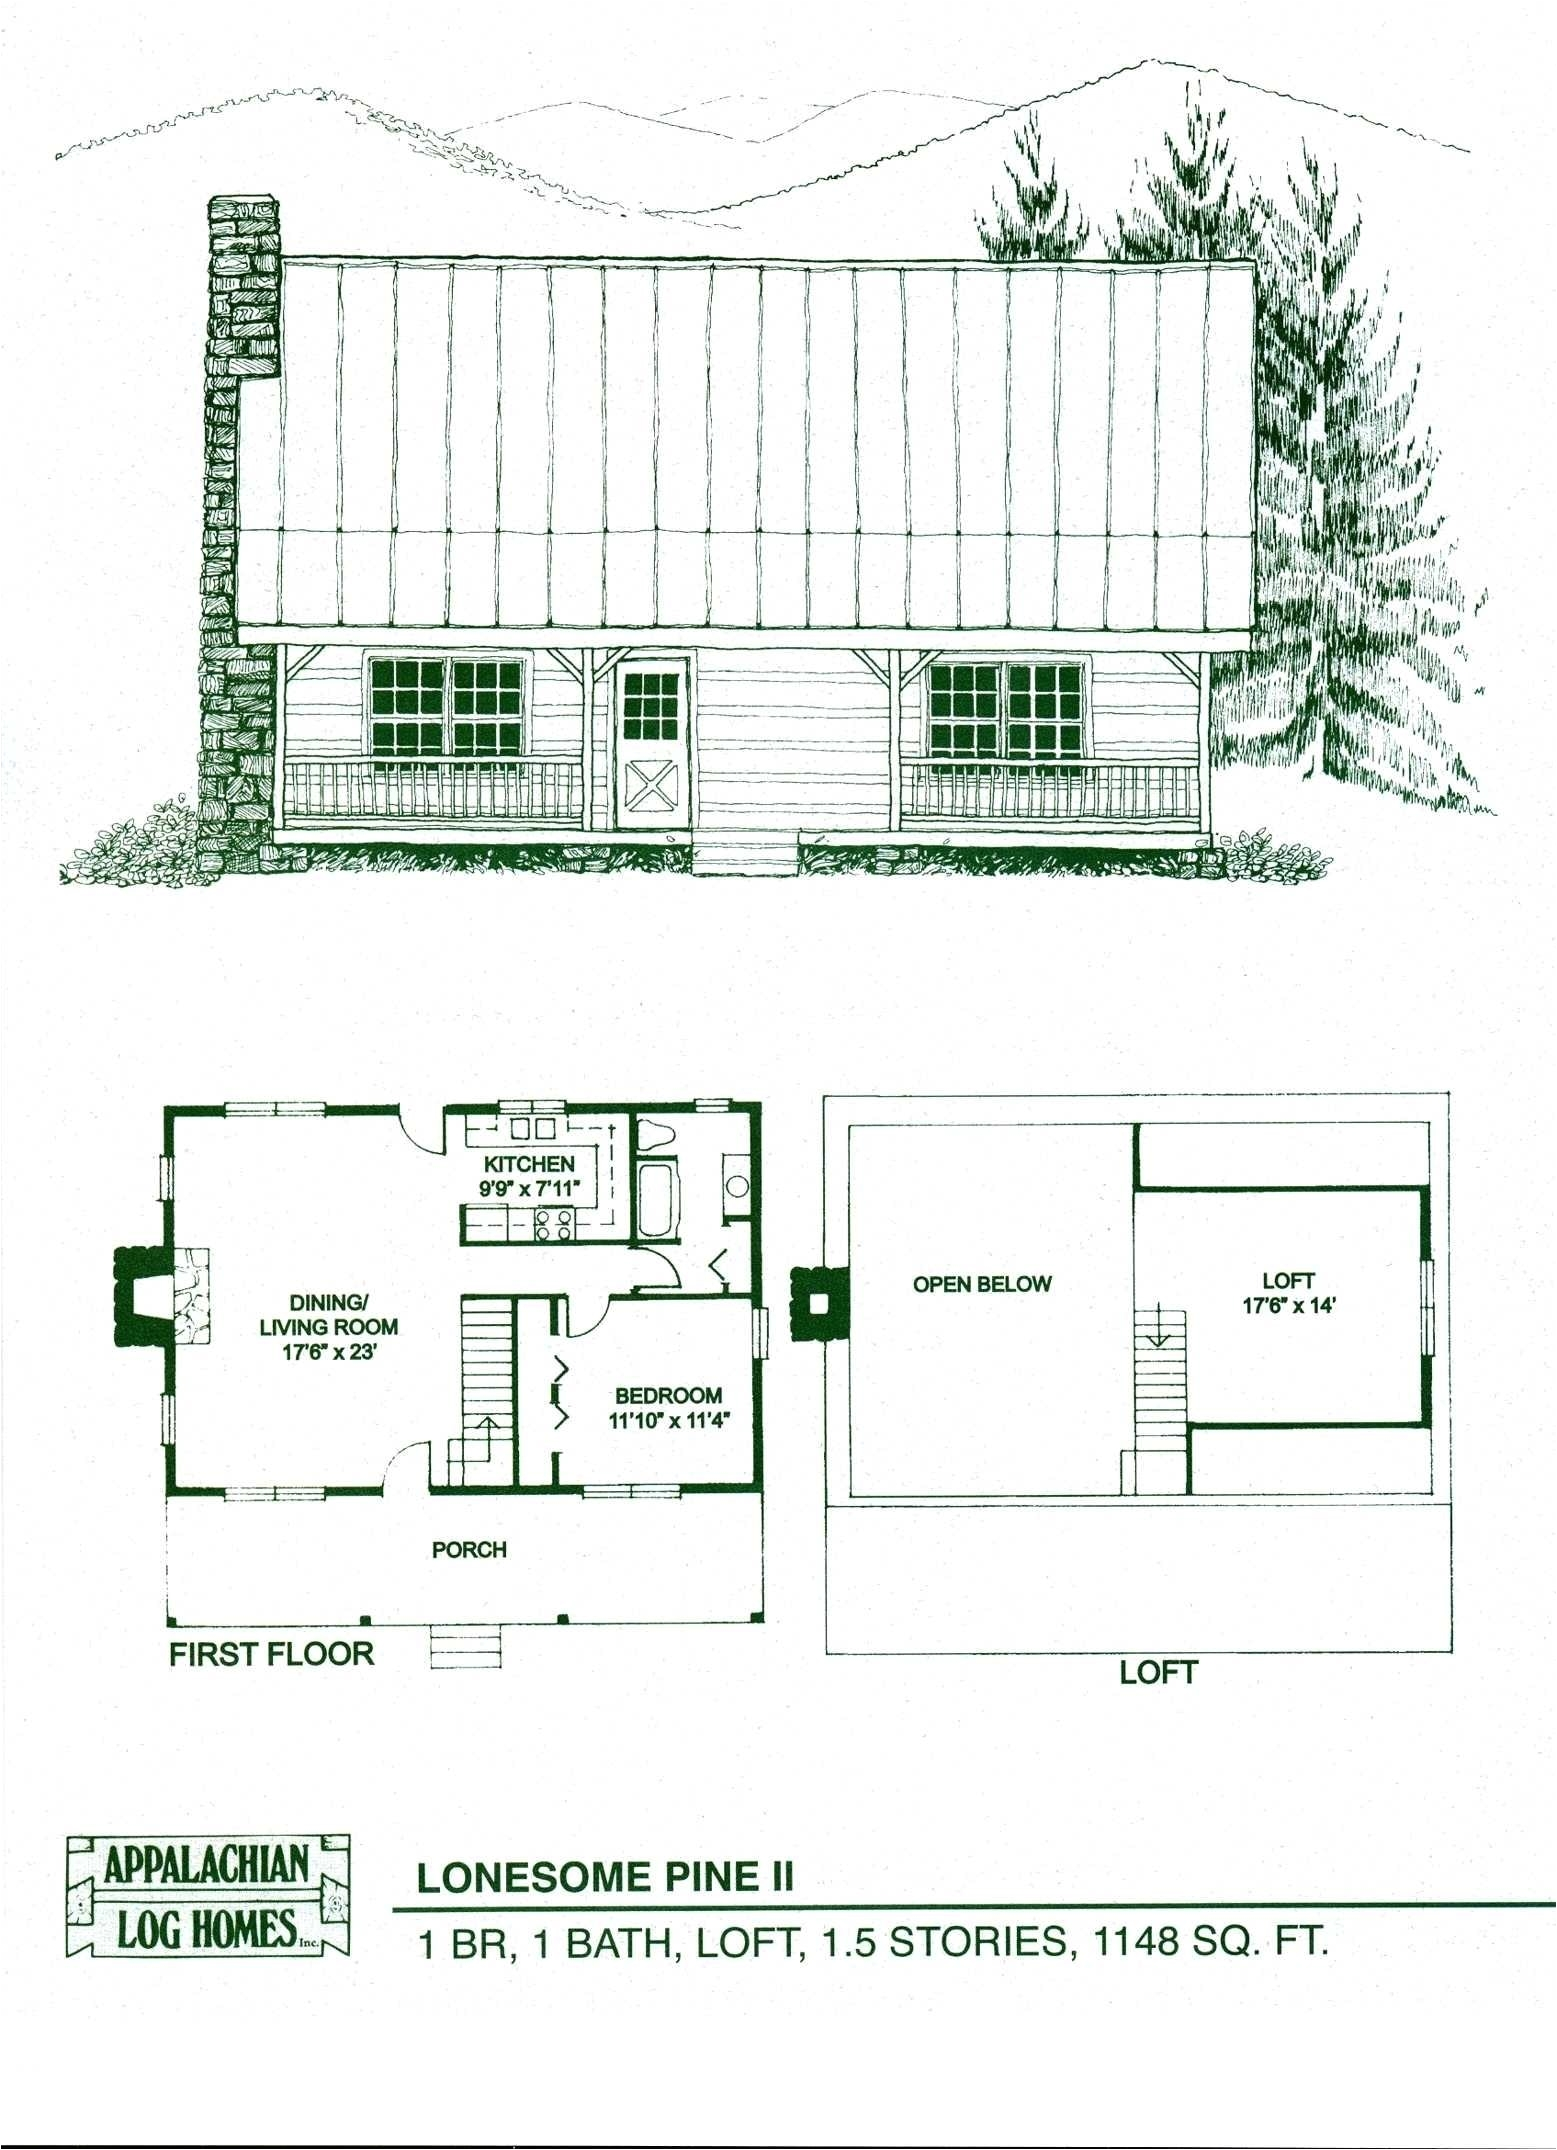 house plans one story ranch inspirational simple e story house plans lovely 83 best ranch style